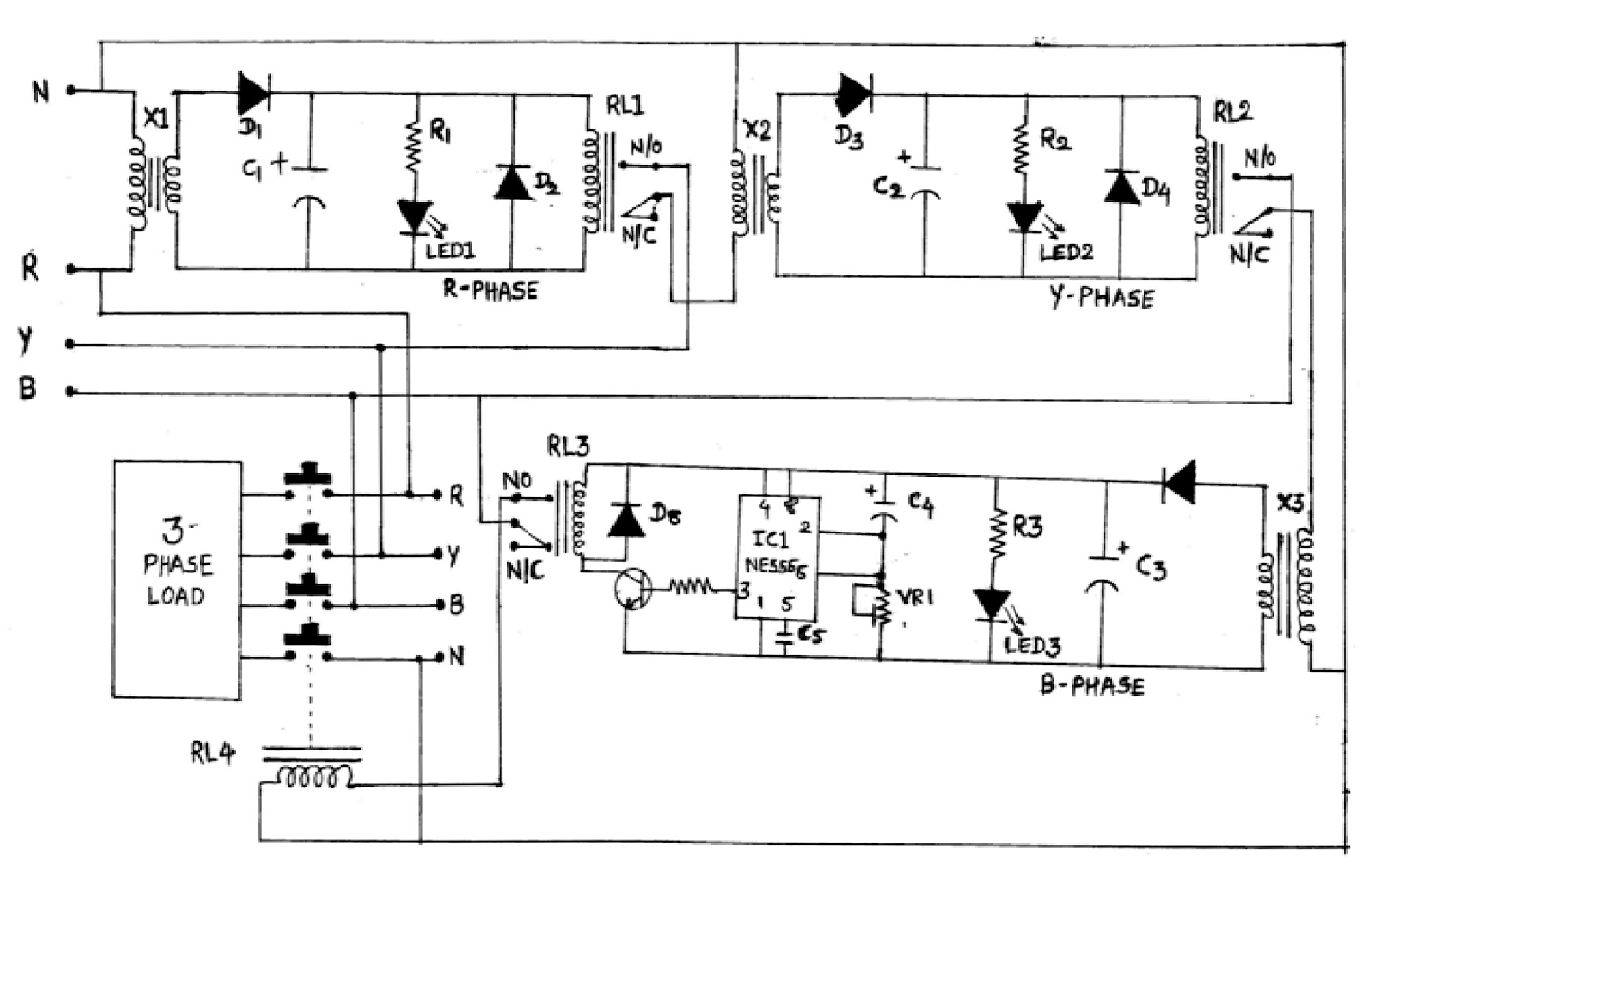 Load Protector Circuit Three Phase Appliance As We Give Supply To The Circuitr Passes Through Step Down Transformer X1 This Reduces Voltage 12v Ac